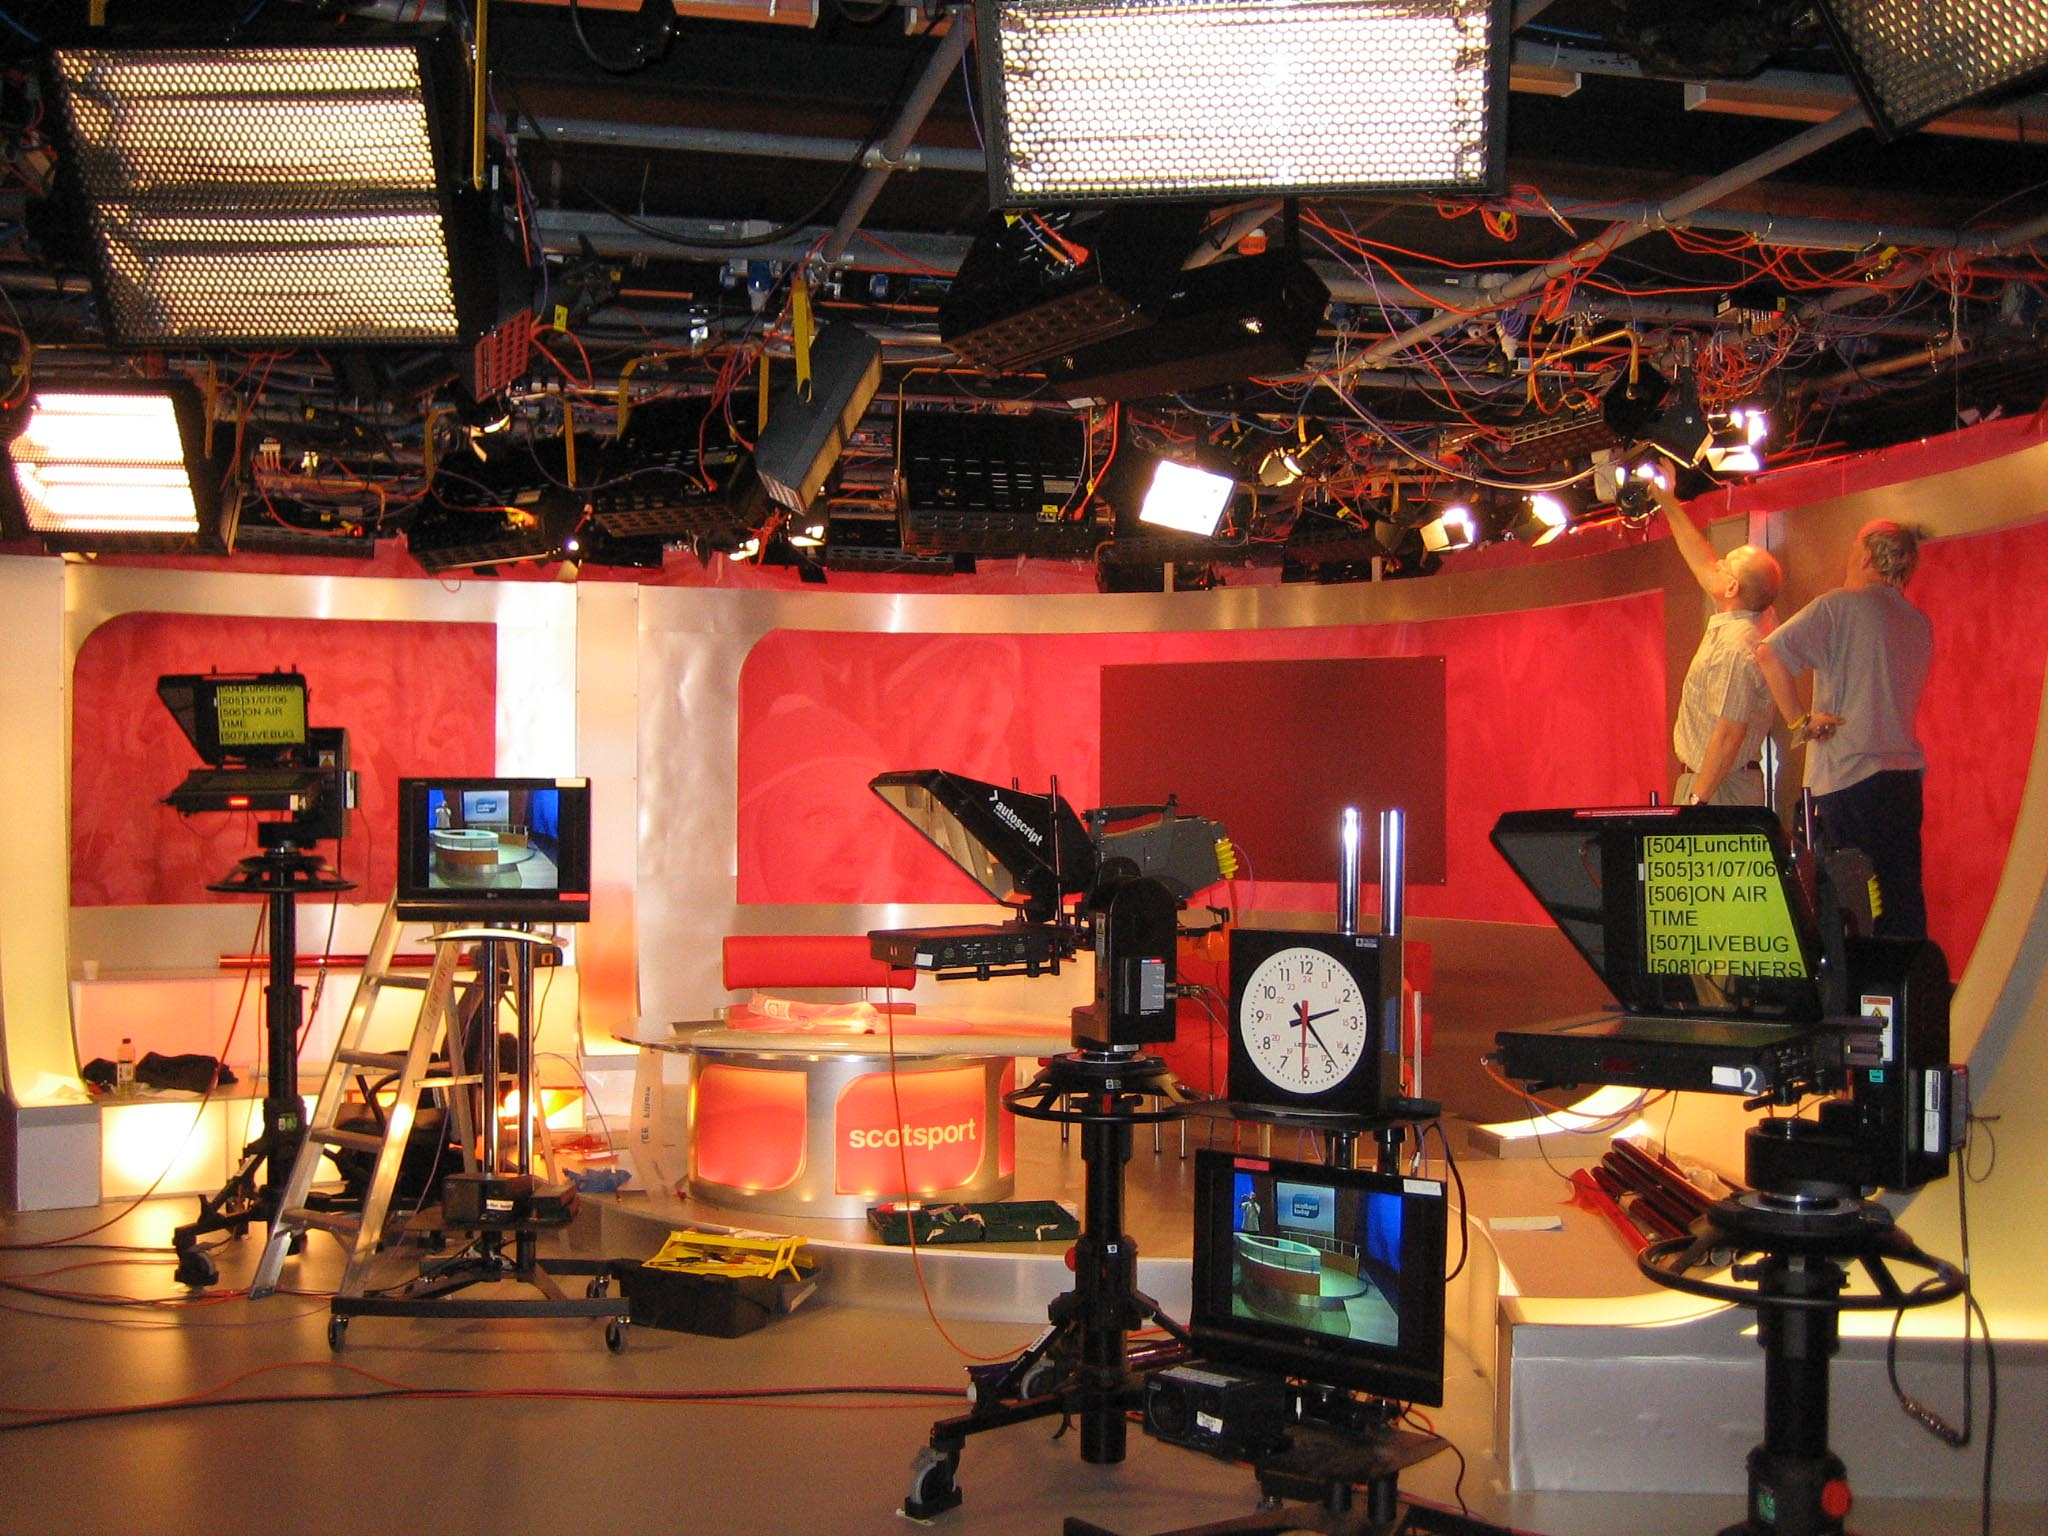 an introduction to the television studio lighting The film and television studio has four 1080i broadcast quality cameras on pedestals, a composite studio floor and full lighting rig enclosed by drapes.